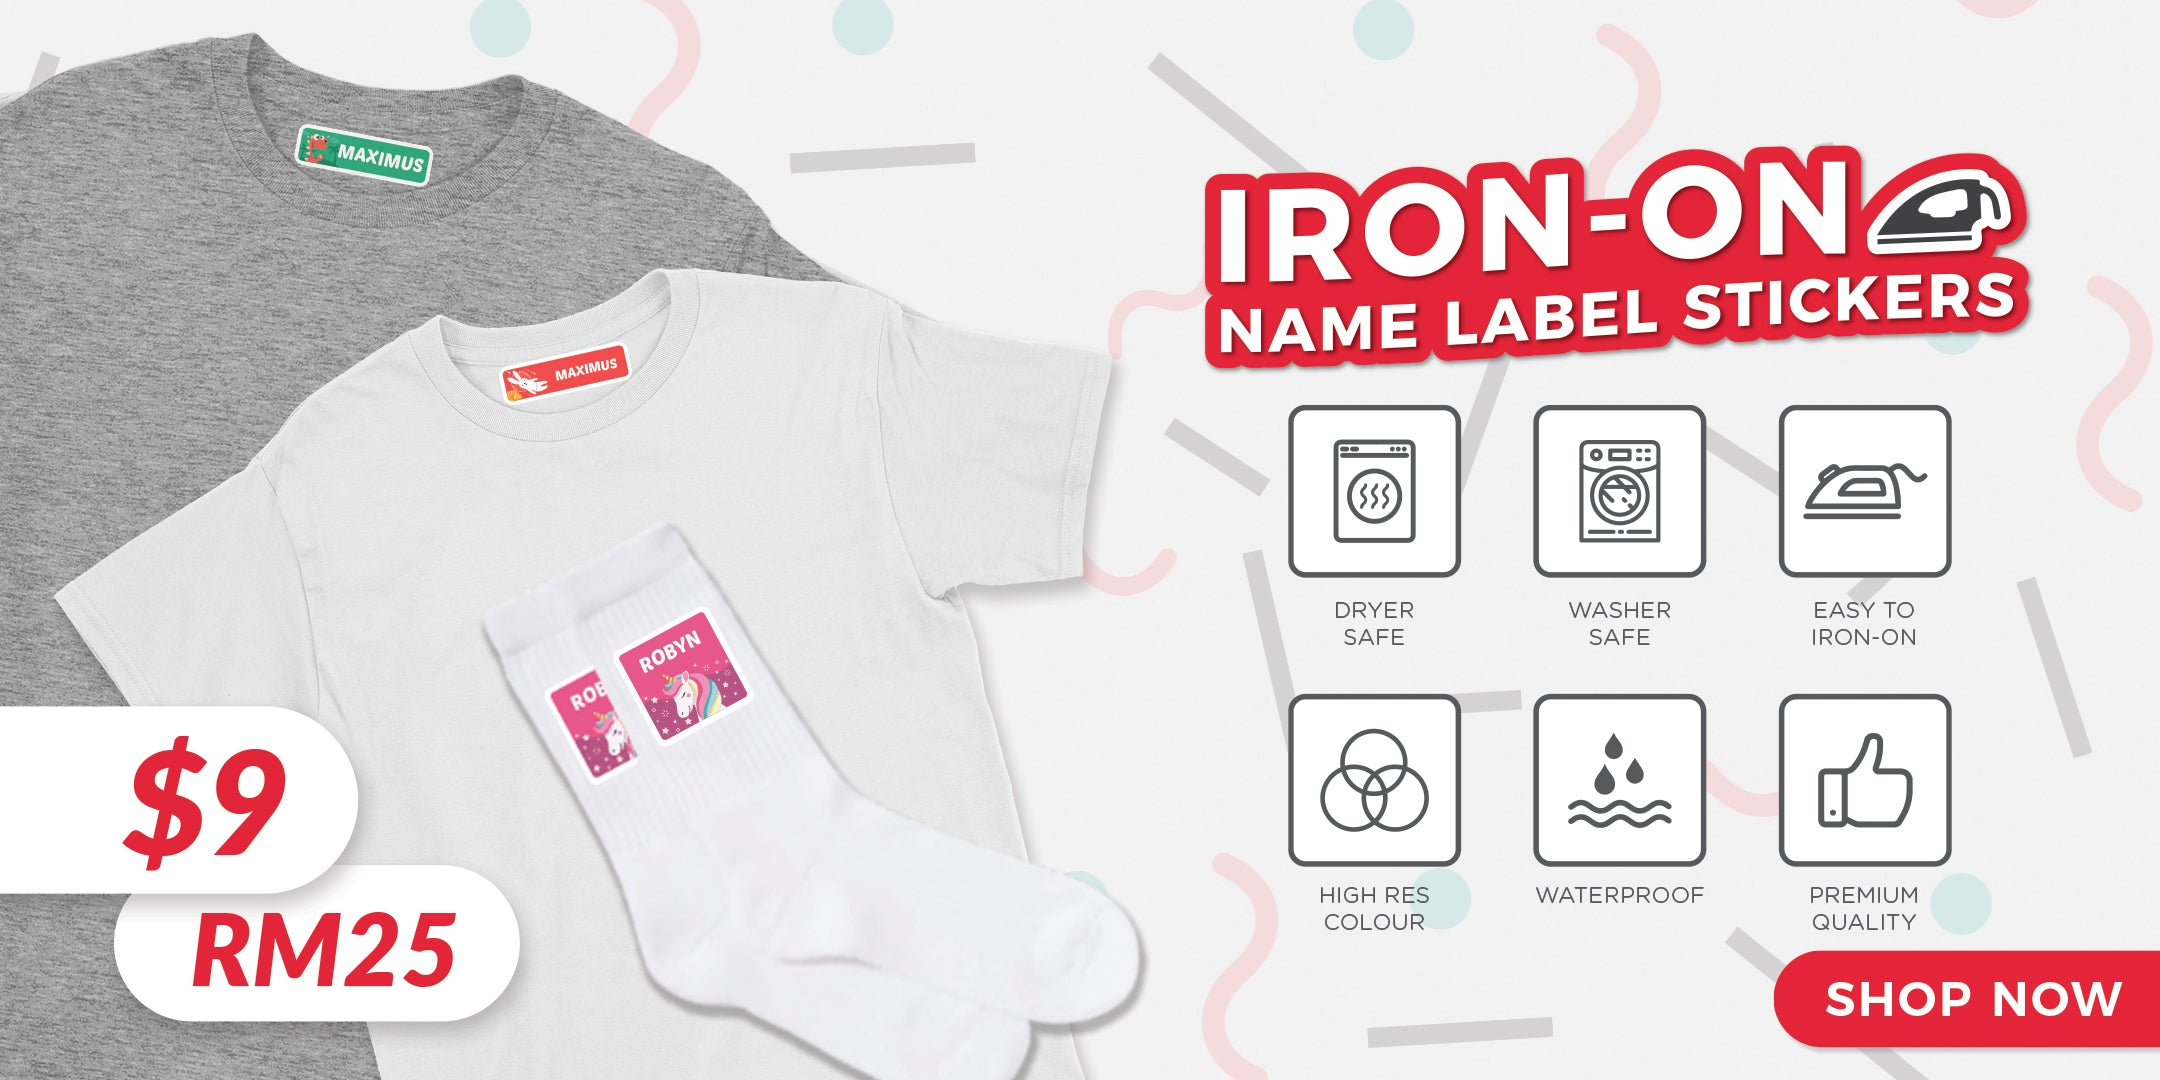 Name-Label-Stickers-Website-Banner-C1.jpg